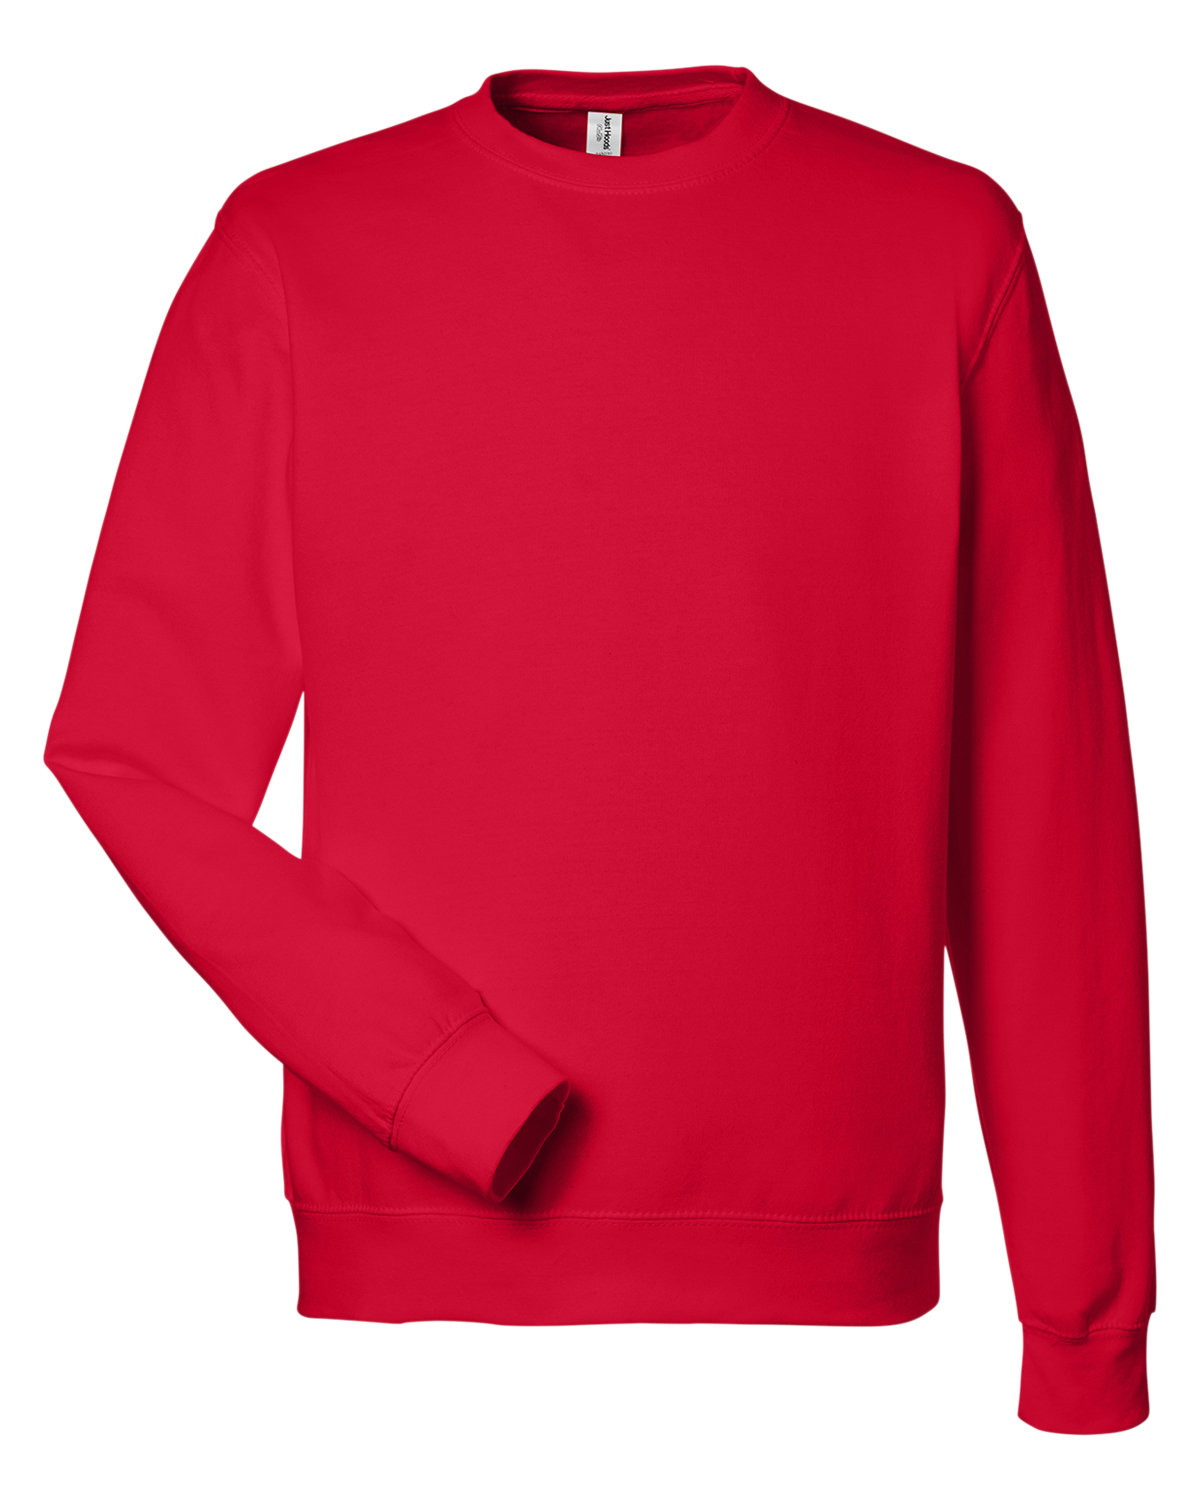 Just Hoods By AWDis Adult 80/20 Midweight College Crewneck Sweatshirt FIRE RED